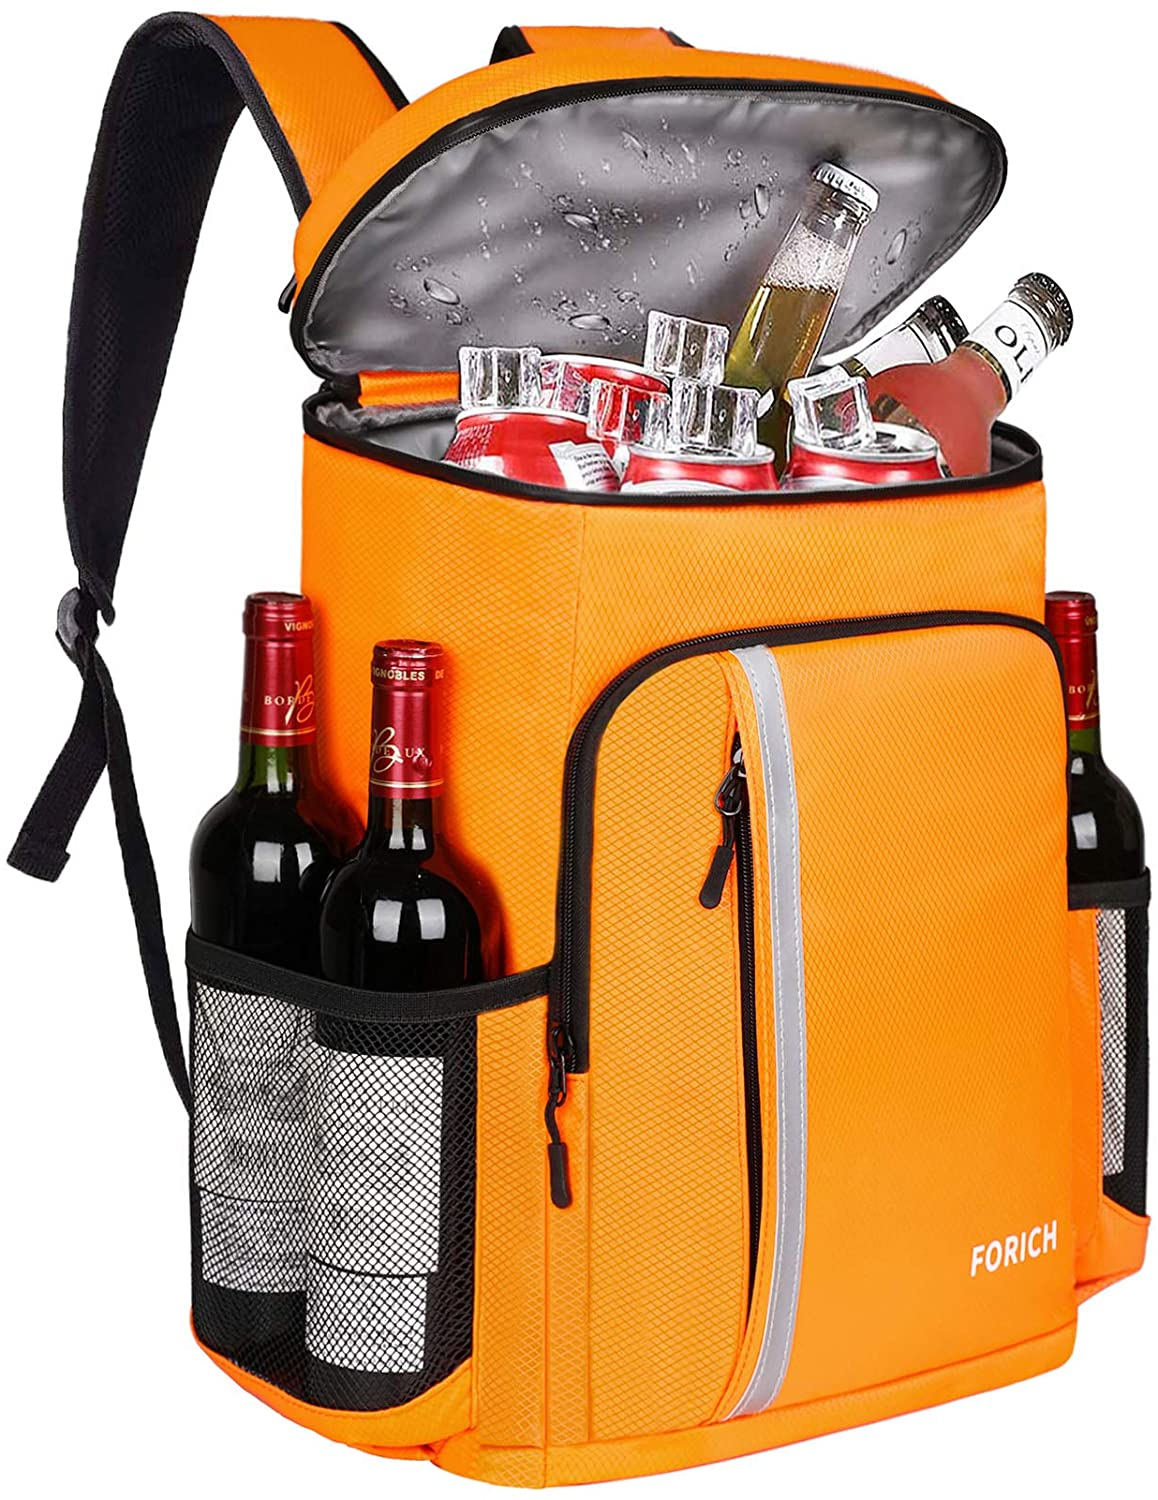 FORICH Backpack Cooler Leakproof Insulated Waterproof Backpack Cooler Bag, Lightweight Soft Beach Cooler Backpack for Men Women to Work Lunch Picnics Camping Hiking, 30 Cans (Orange) : Sports & Outdoors